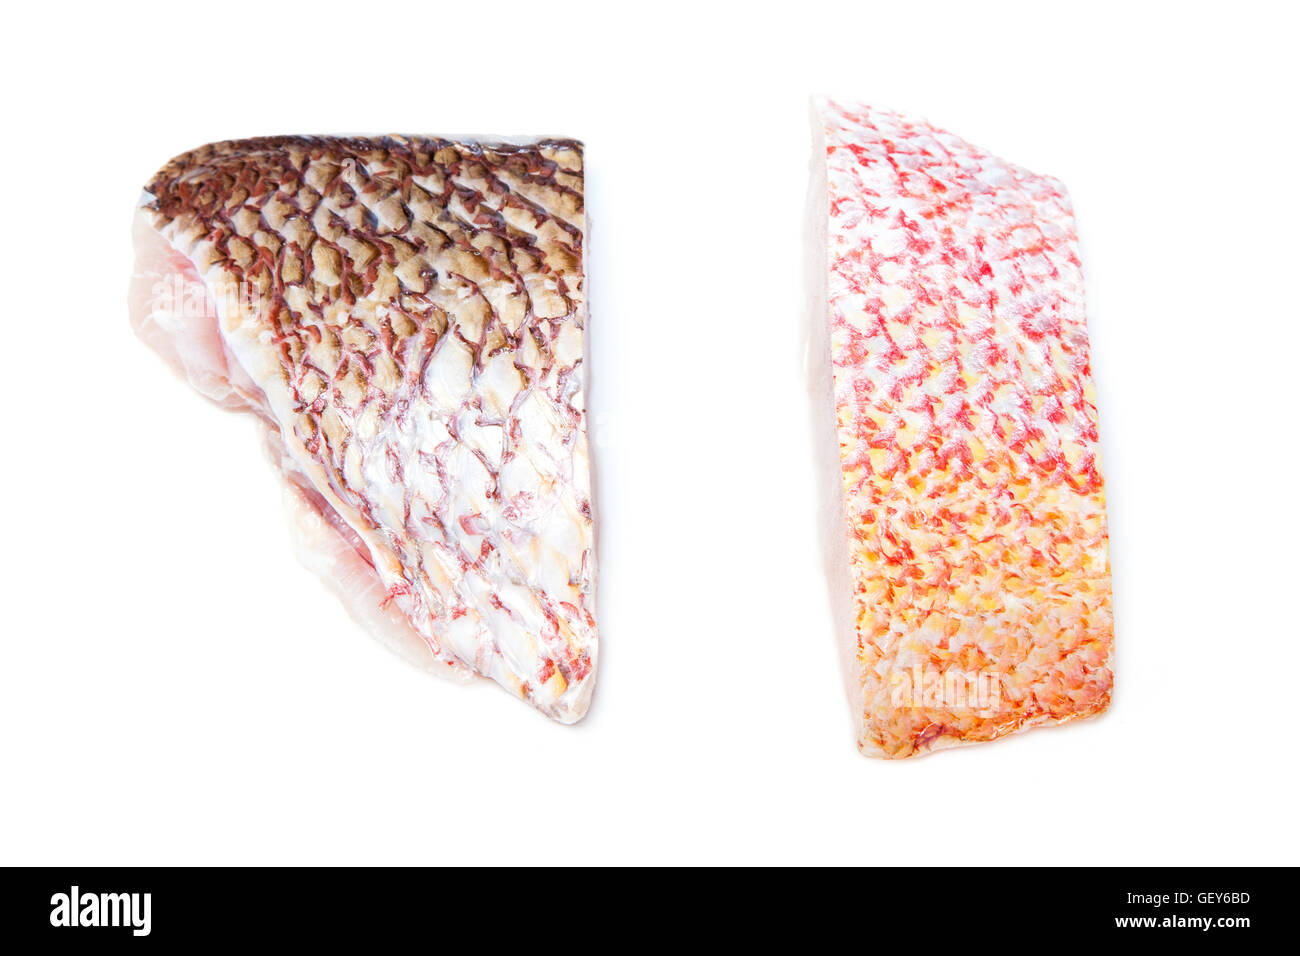 Raw Red Snapper fish fillets isolated on a white studio background. Stock Photo